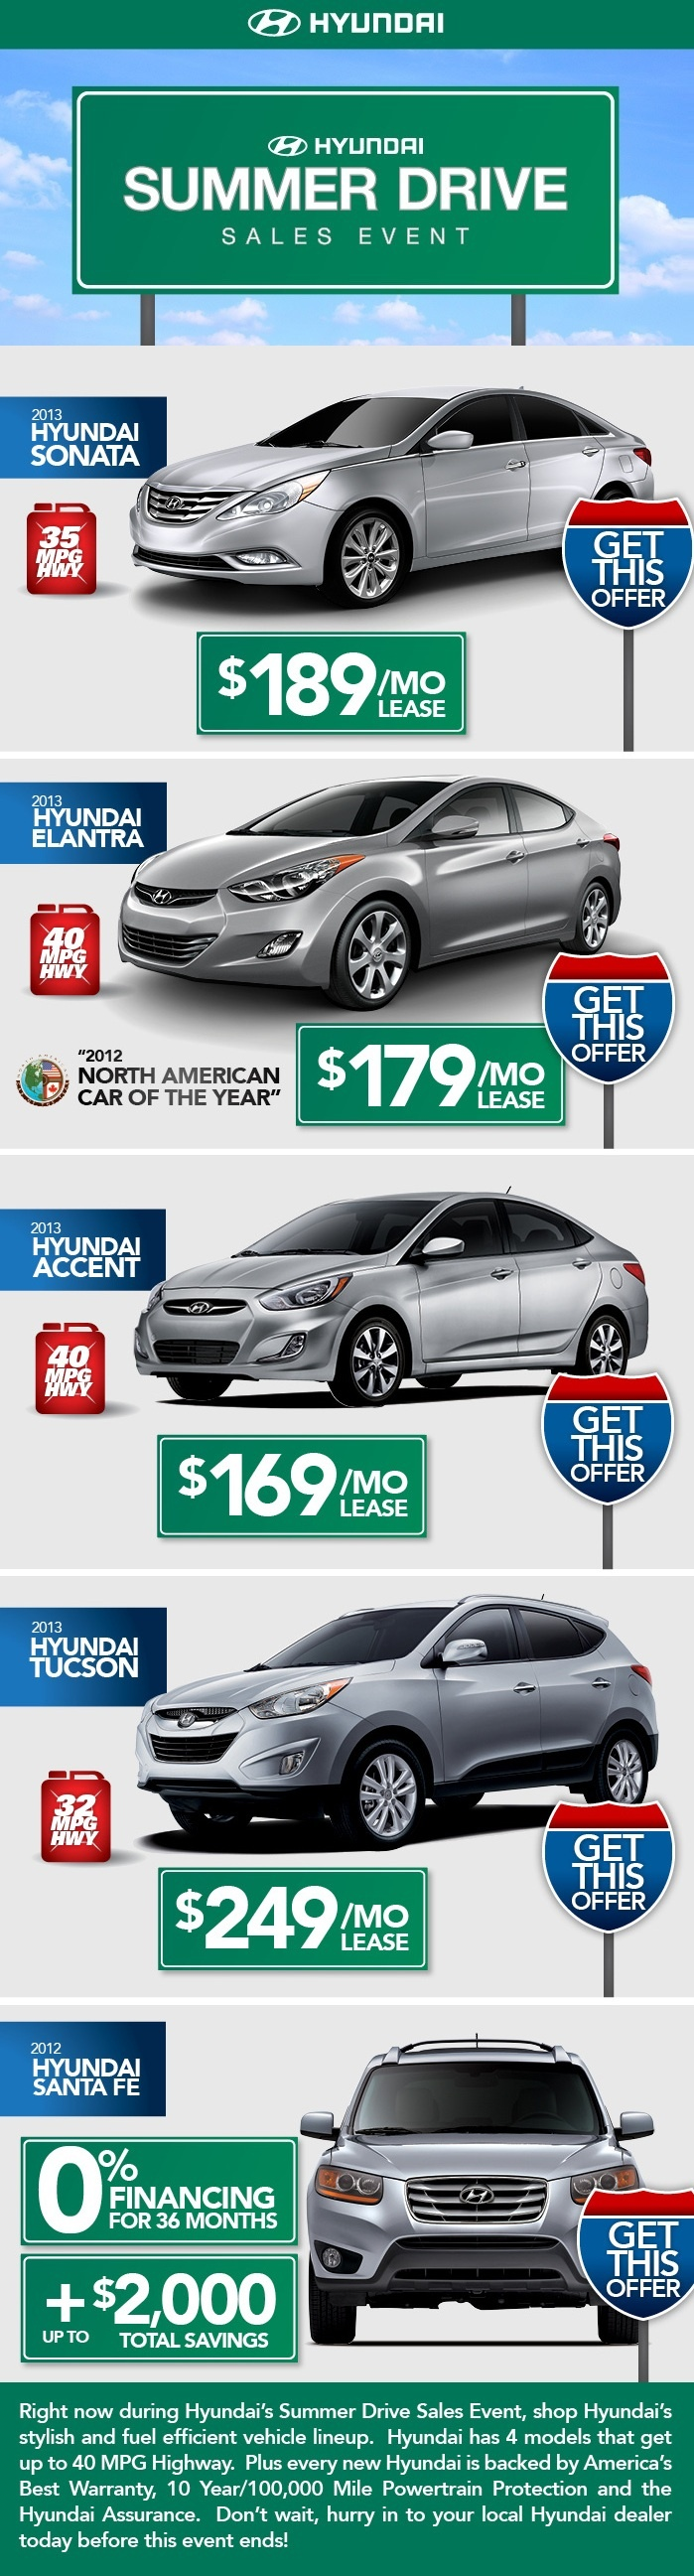 2015 hyundai sonata pricing options and specifications cleanmpg - Hyundai Summer Sales Event Has Begun So Many Fuel Efficient Vehicles At Great Prices